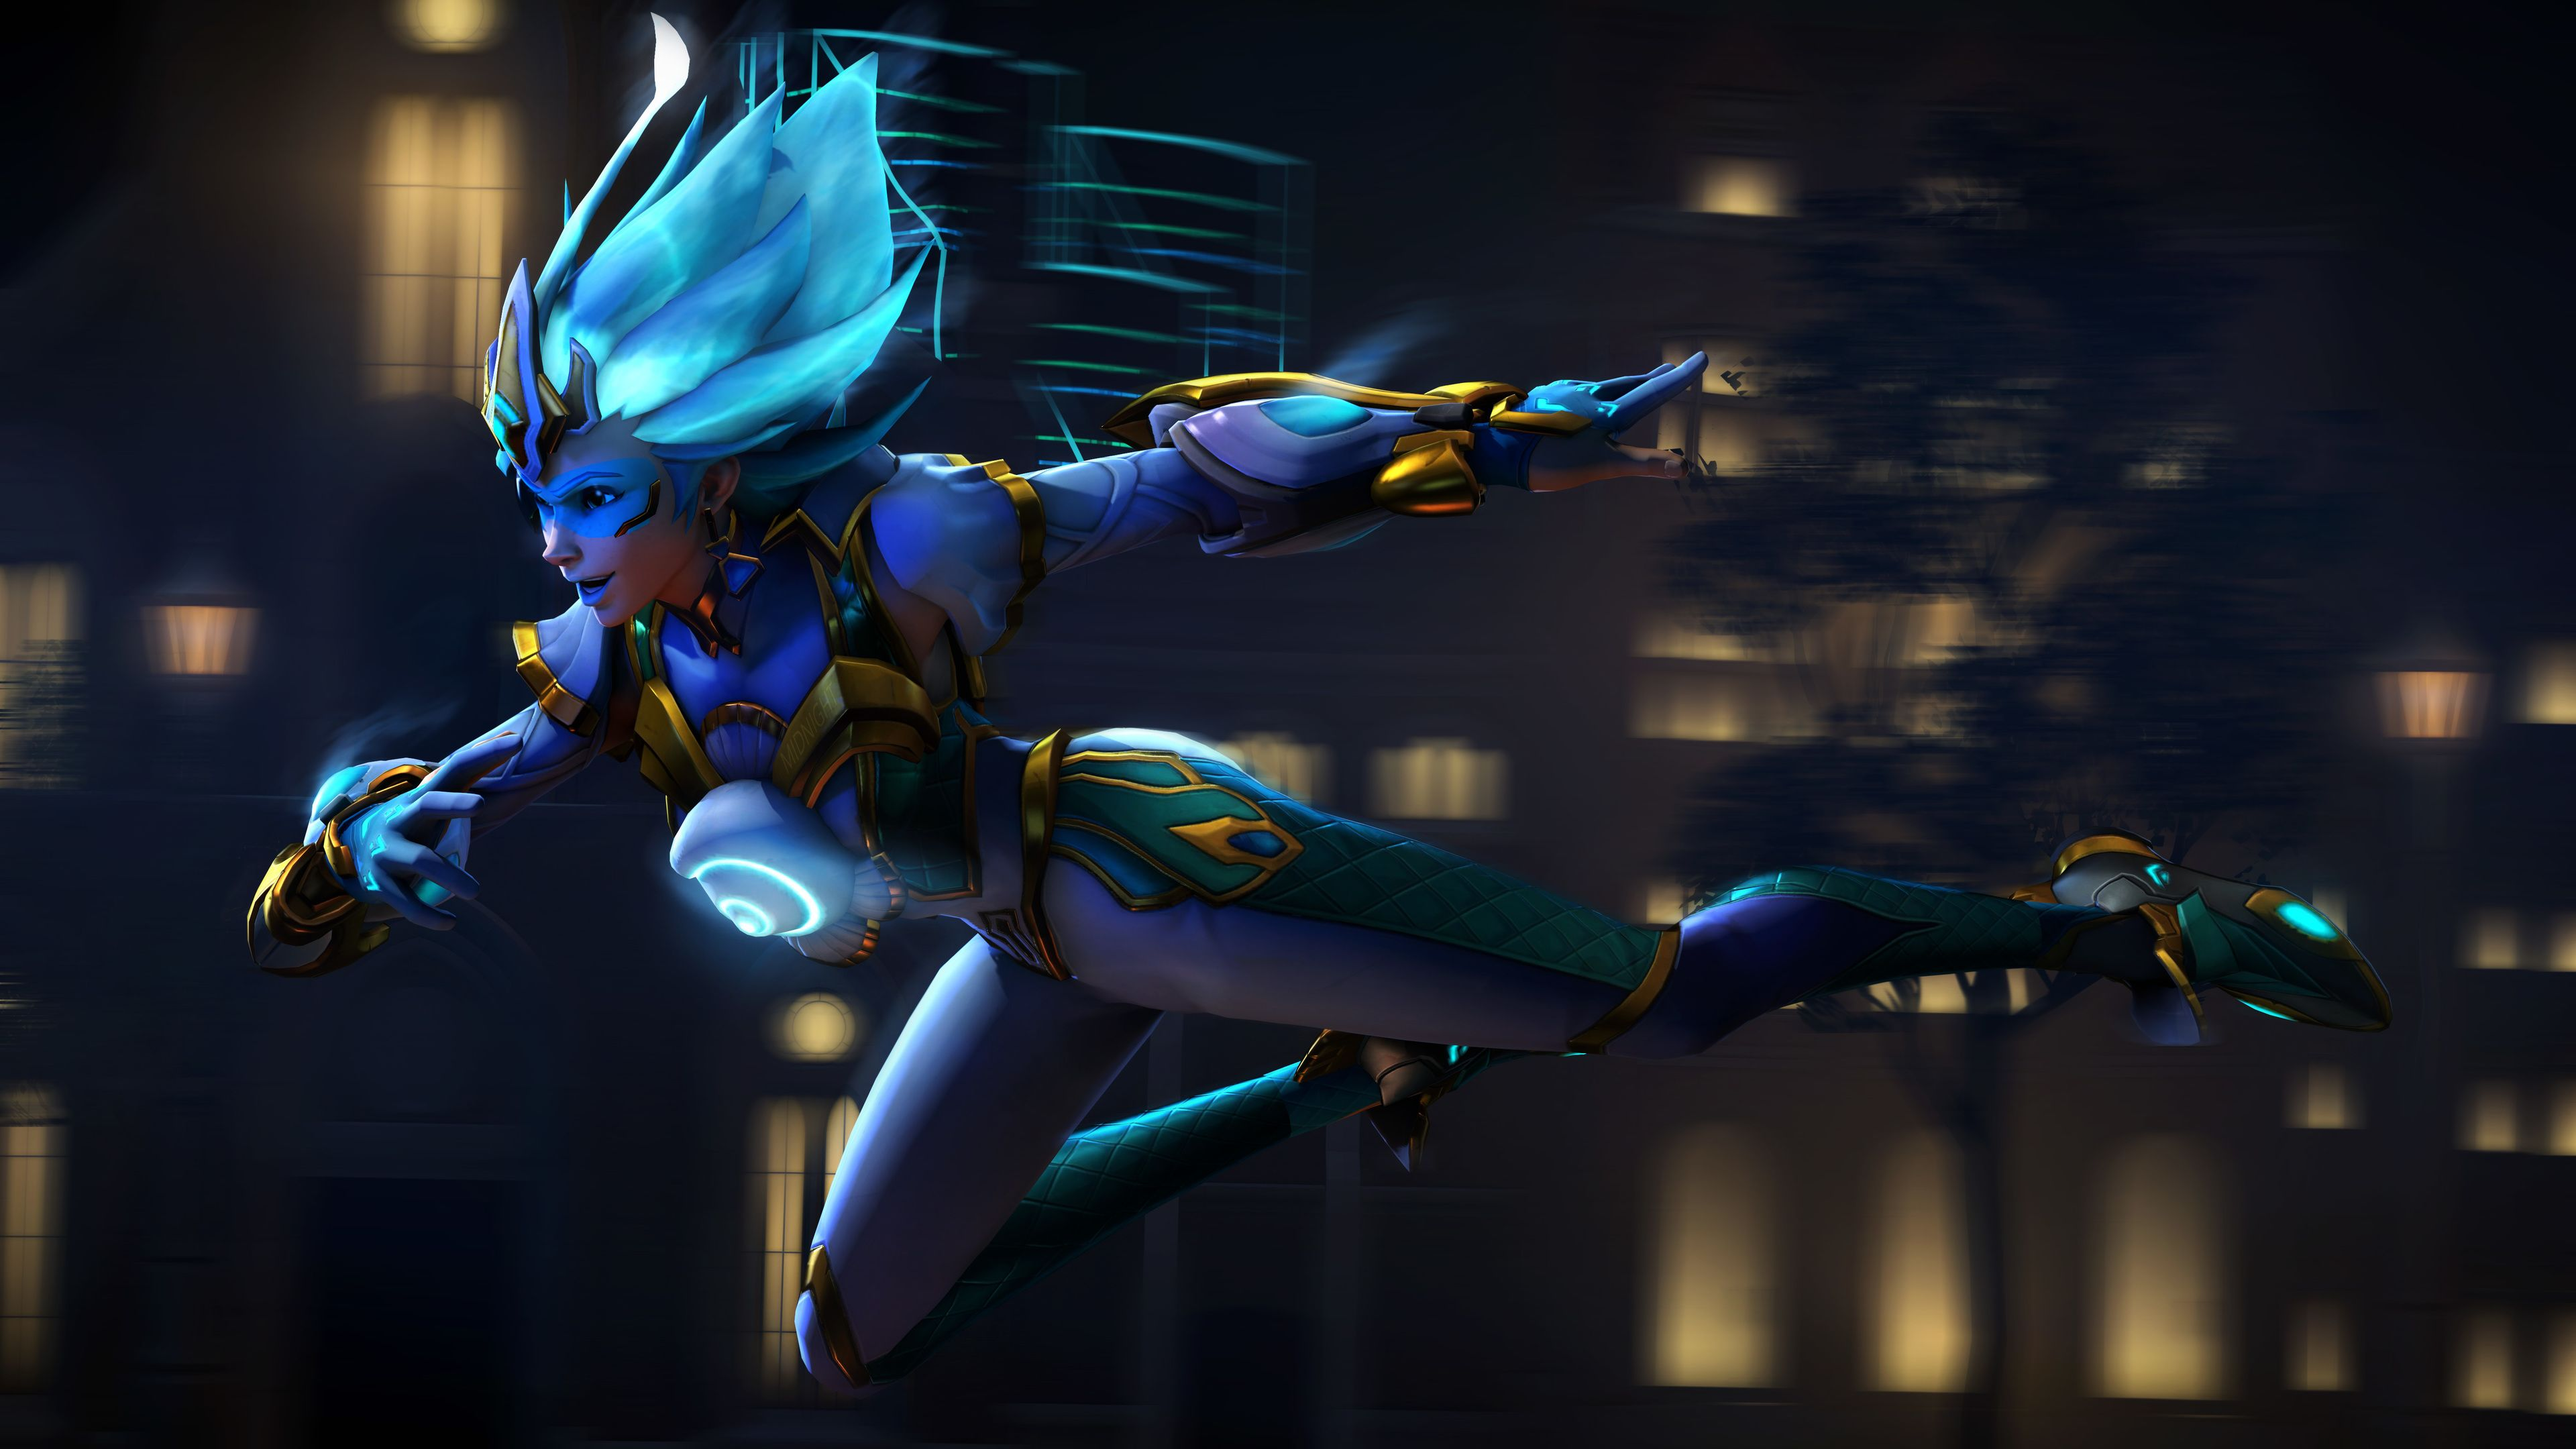 Tracer Overwatch Supersaiyanblue Digital Art 4k Xbox Games